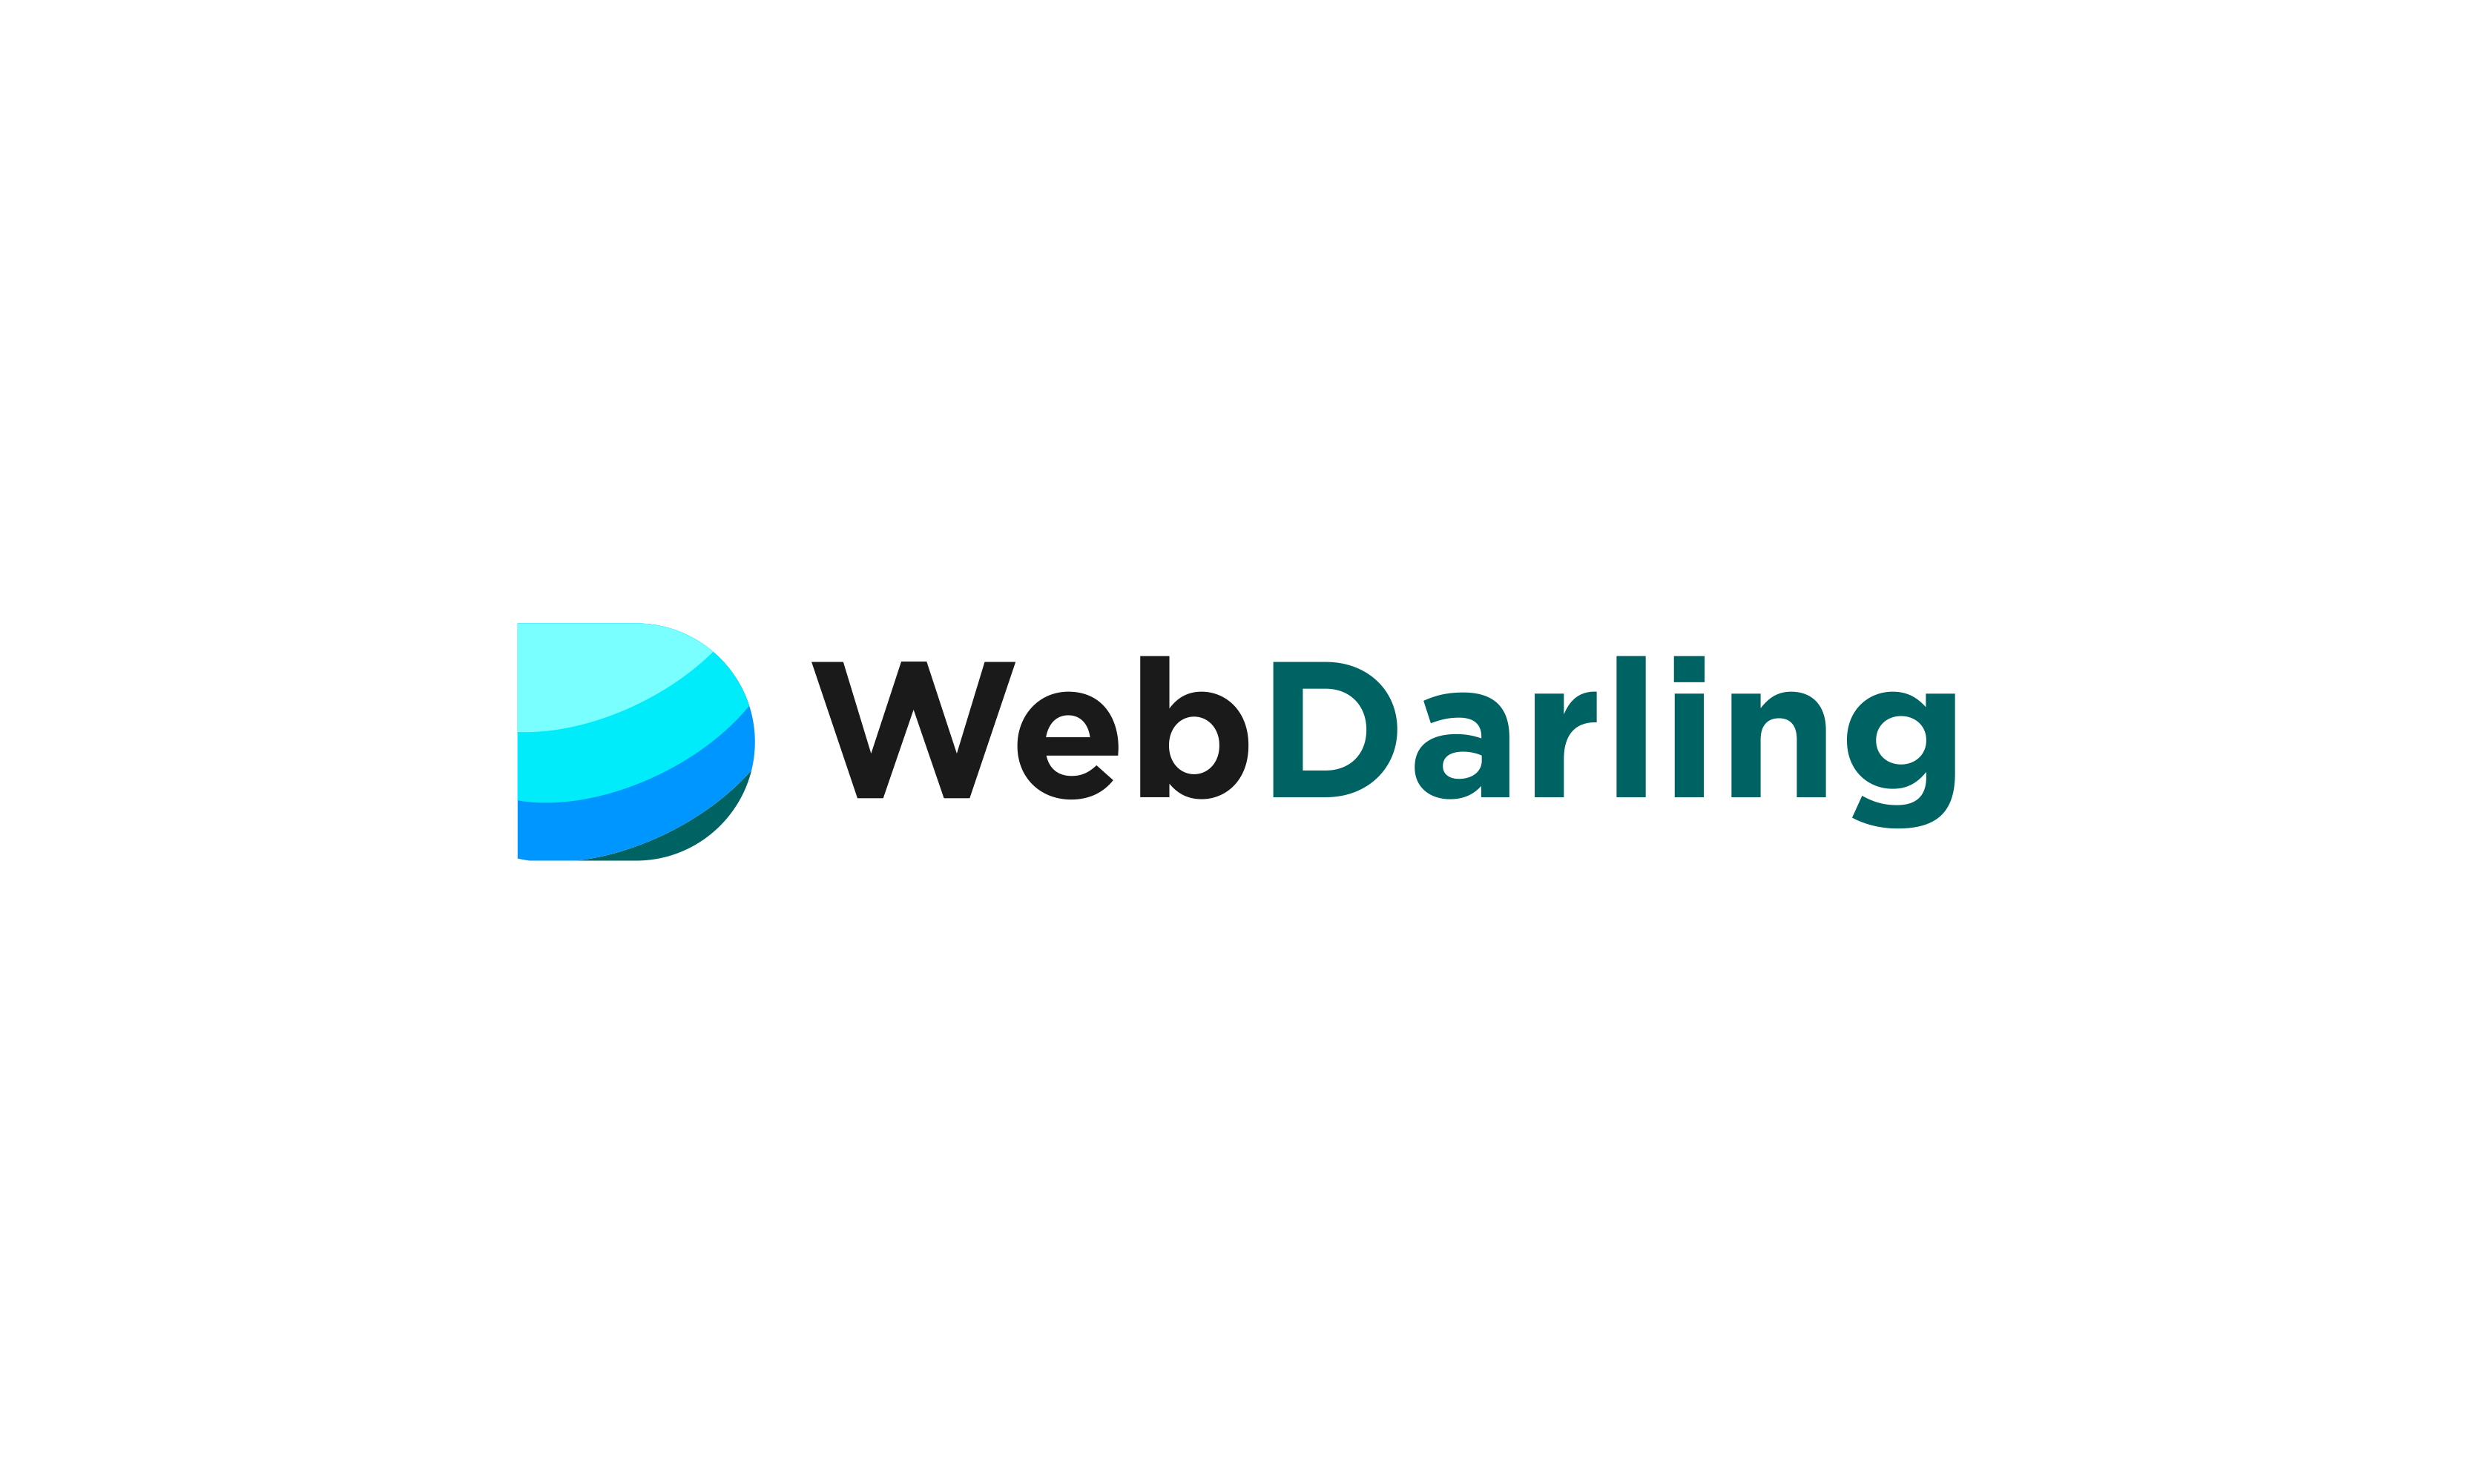 Webdarling - Business brand name for sale